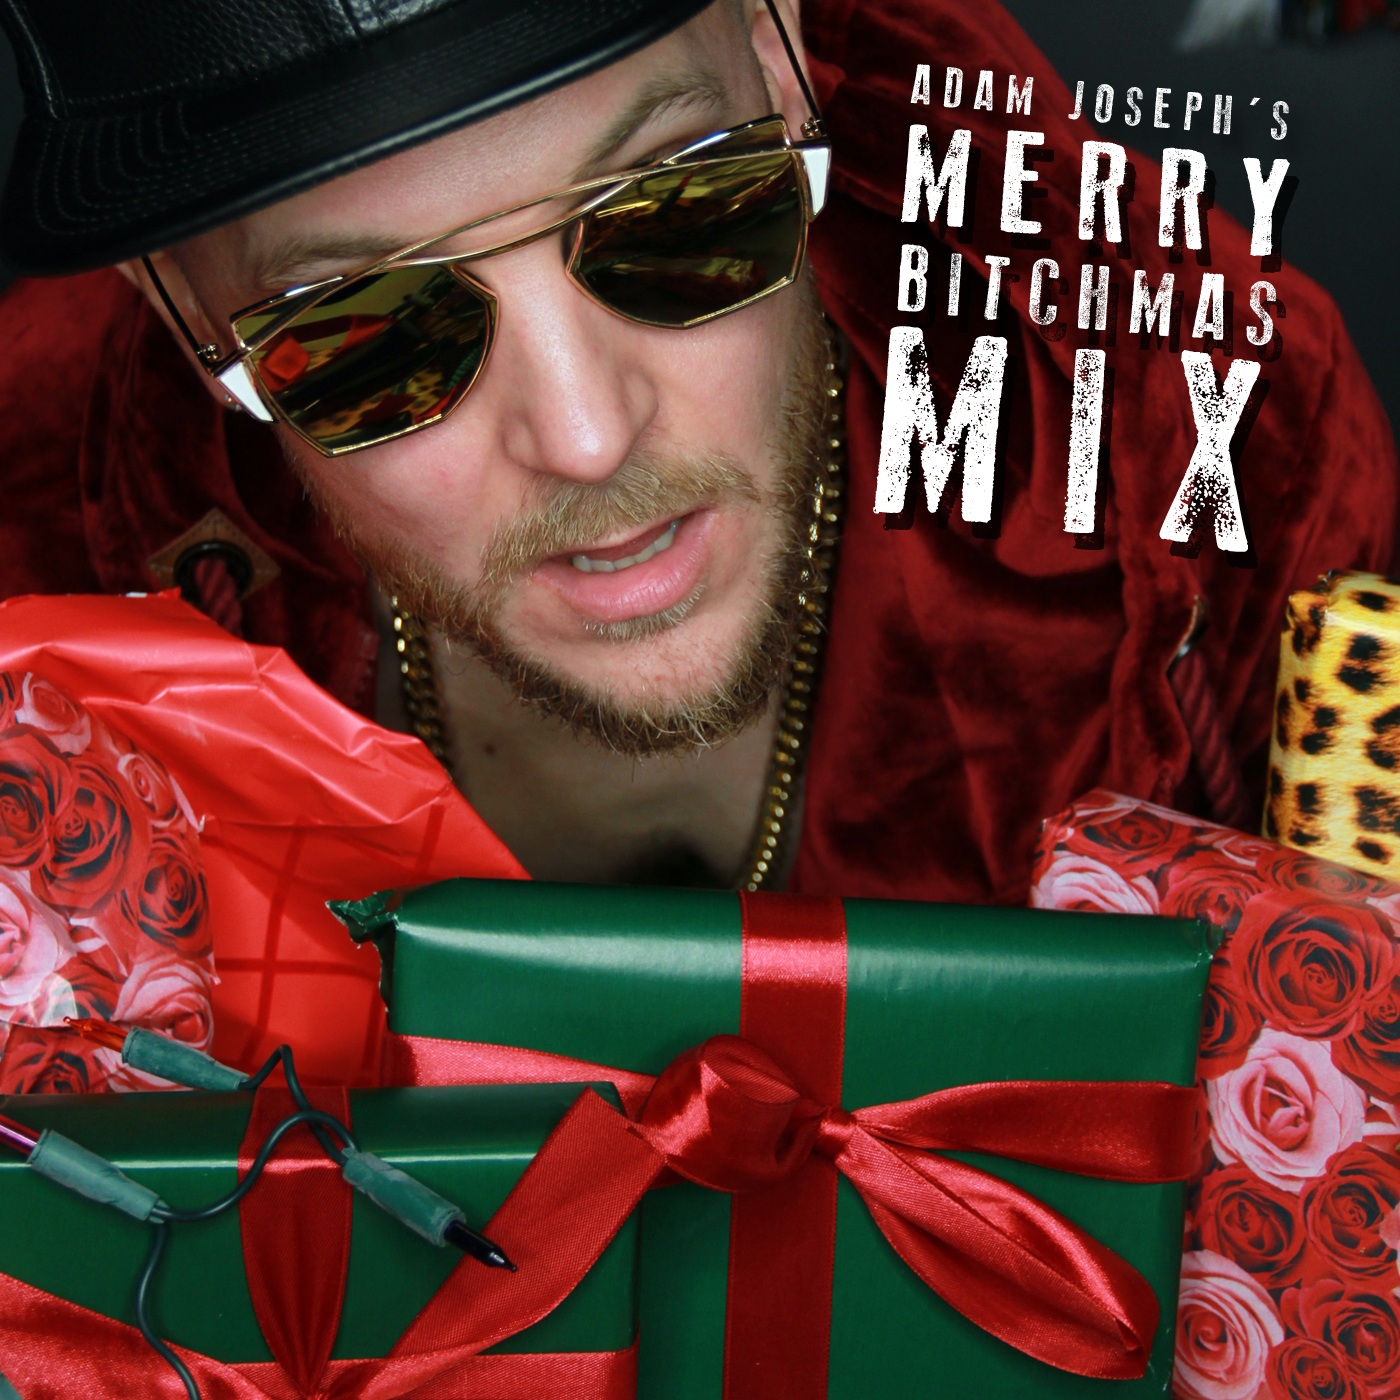 "MERRY BITCHMAS! - New DJ Mix featuring Bitch Tracks produced by Adam Joseph including ""Voguing Right Now'"", ""LINDA EVANGELISTA"", ""Cookies"" and many more!"